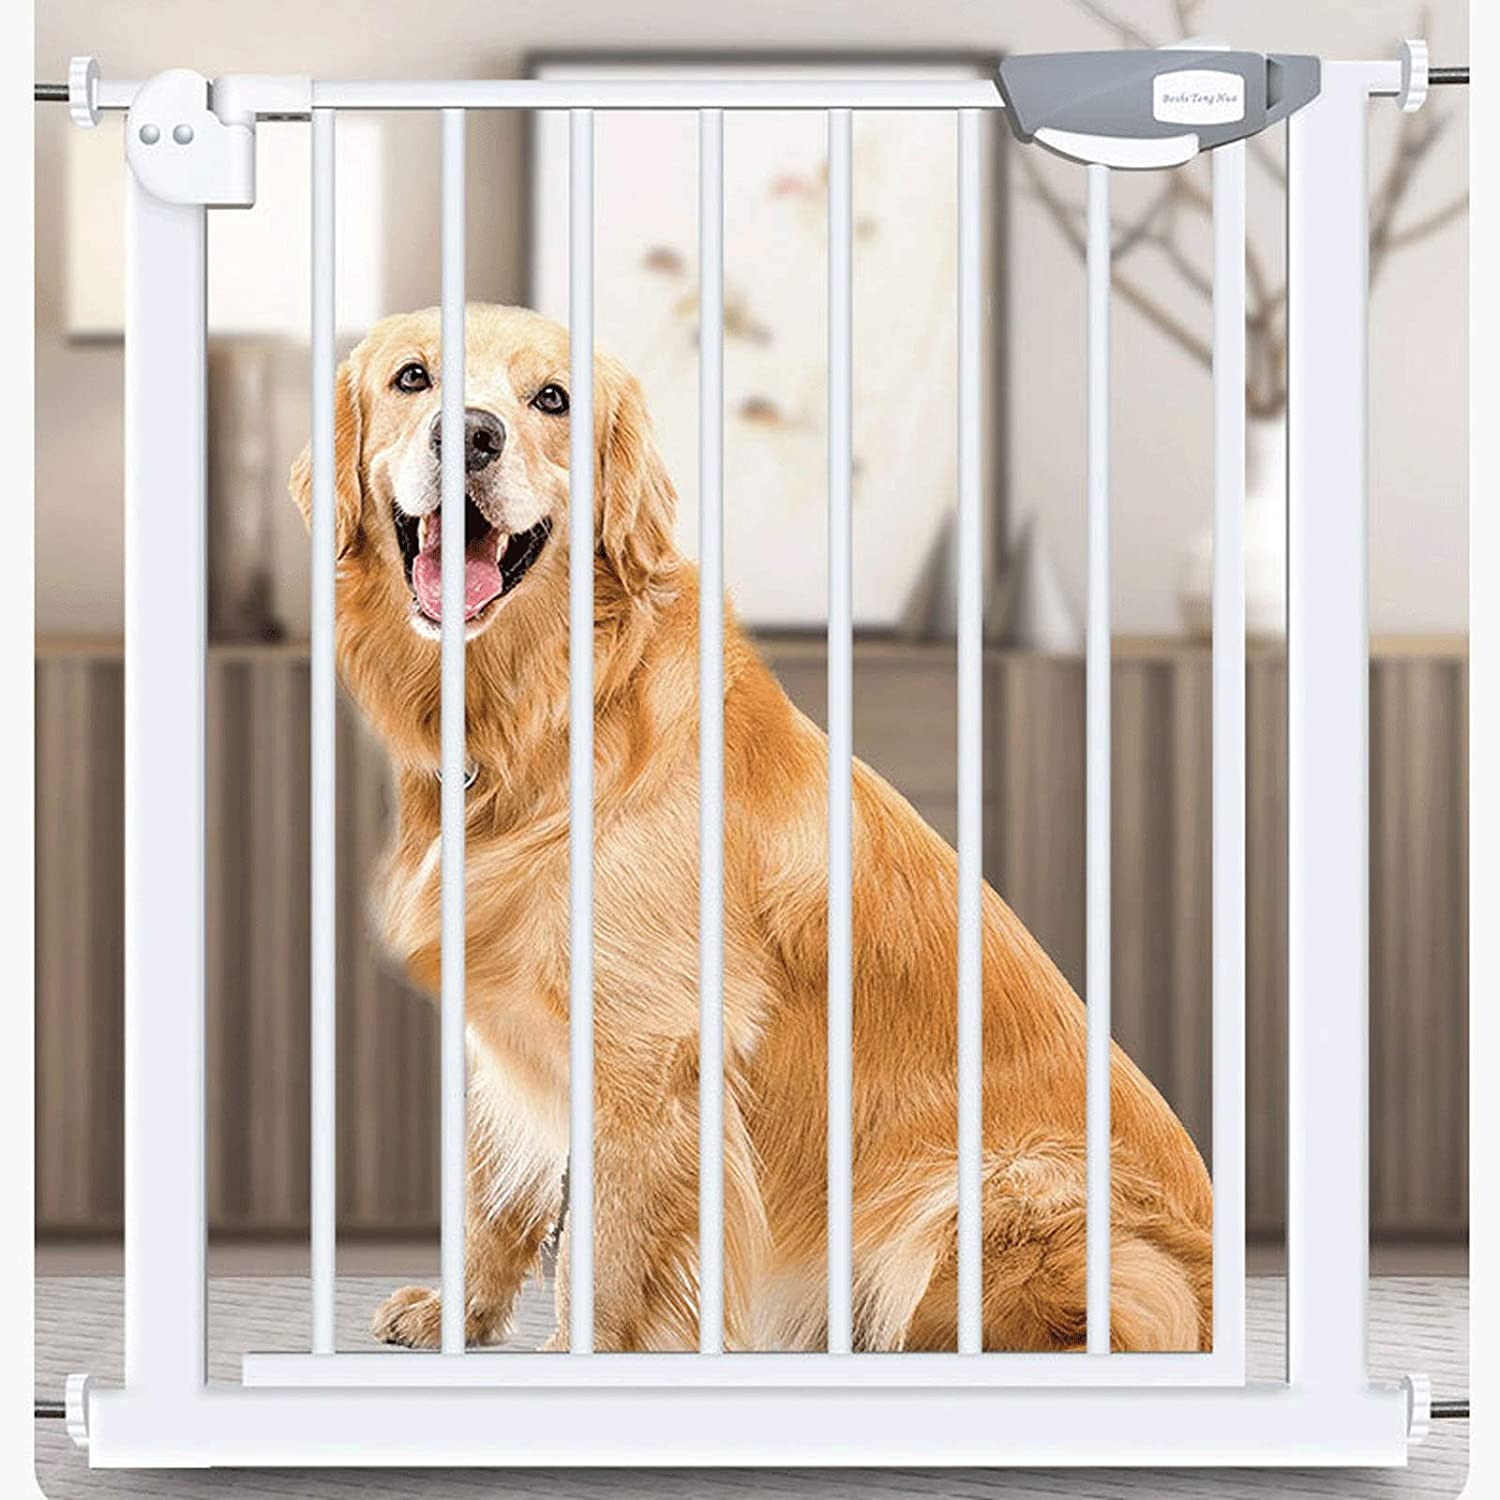 MSG High Quanlity Pet Bargain sale Safety overseas Door Gate Stairway Isolation Guardr